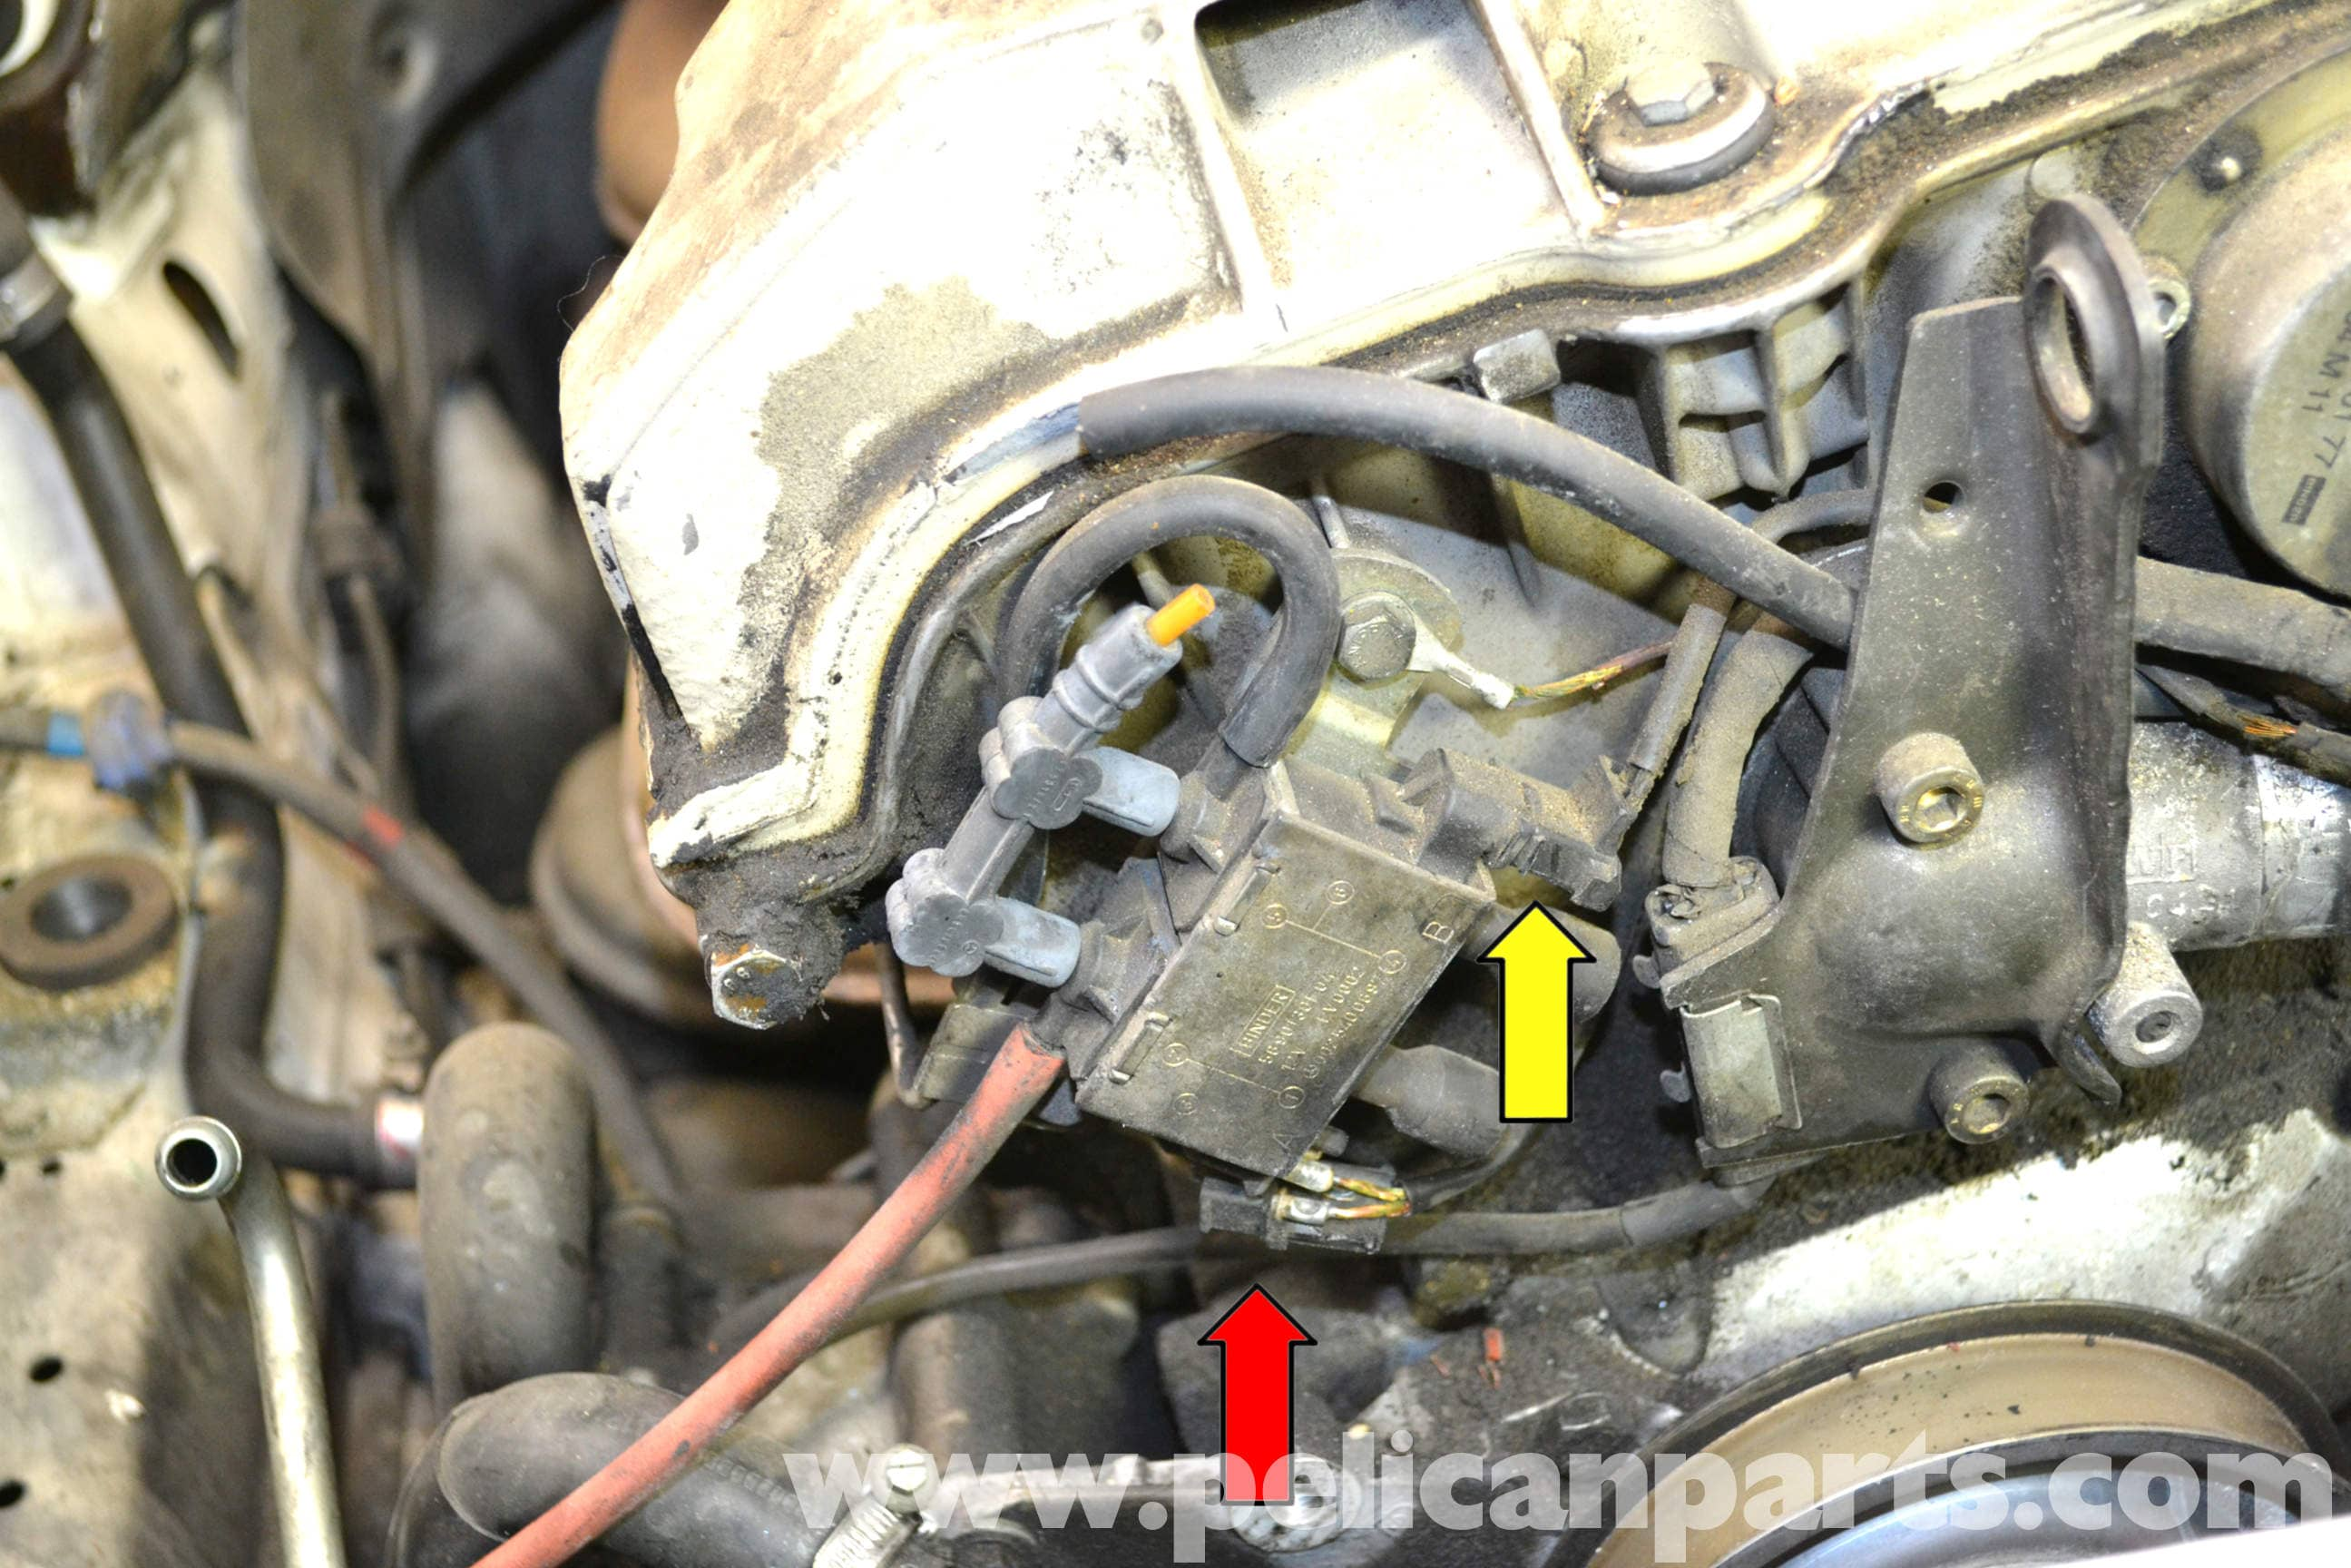 Mercedes-Benz W124 EGR Change Over Valve Replacement | 1986-1995 E